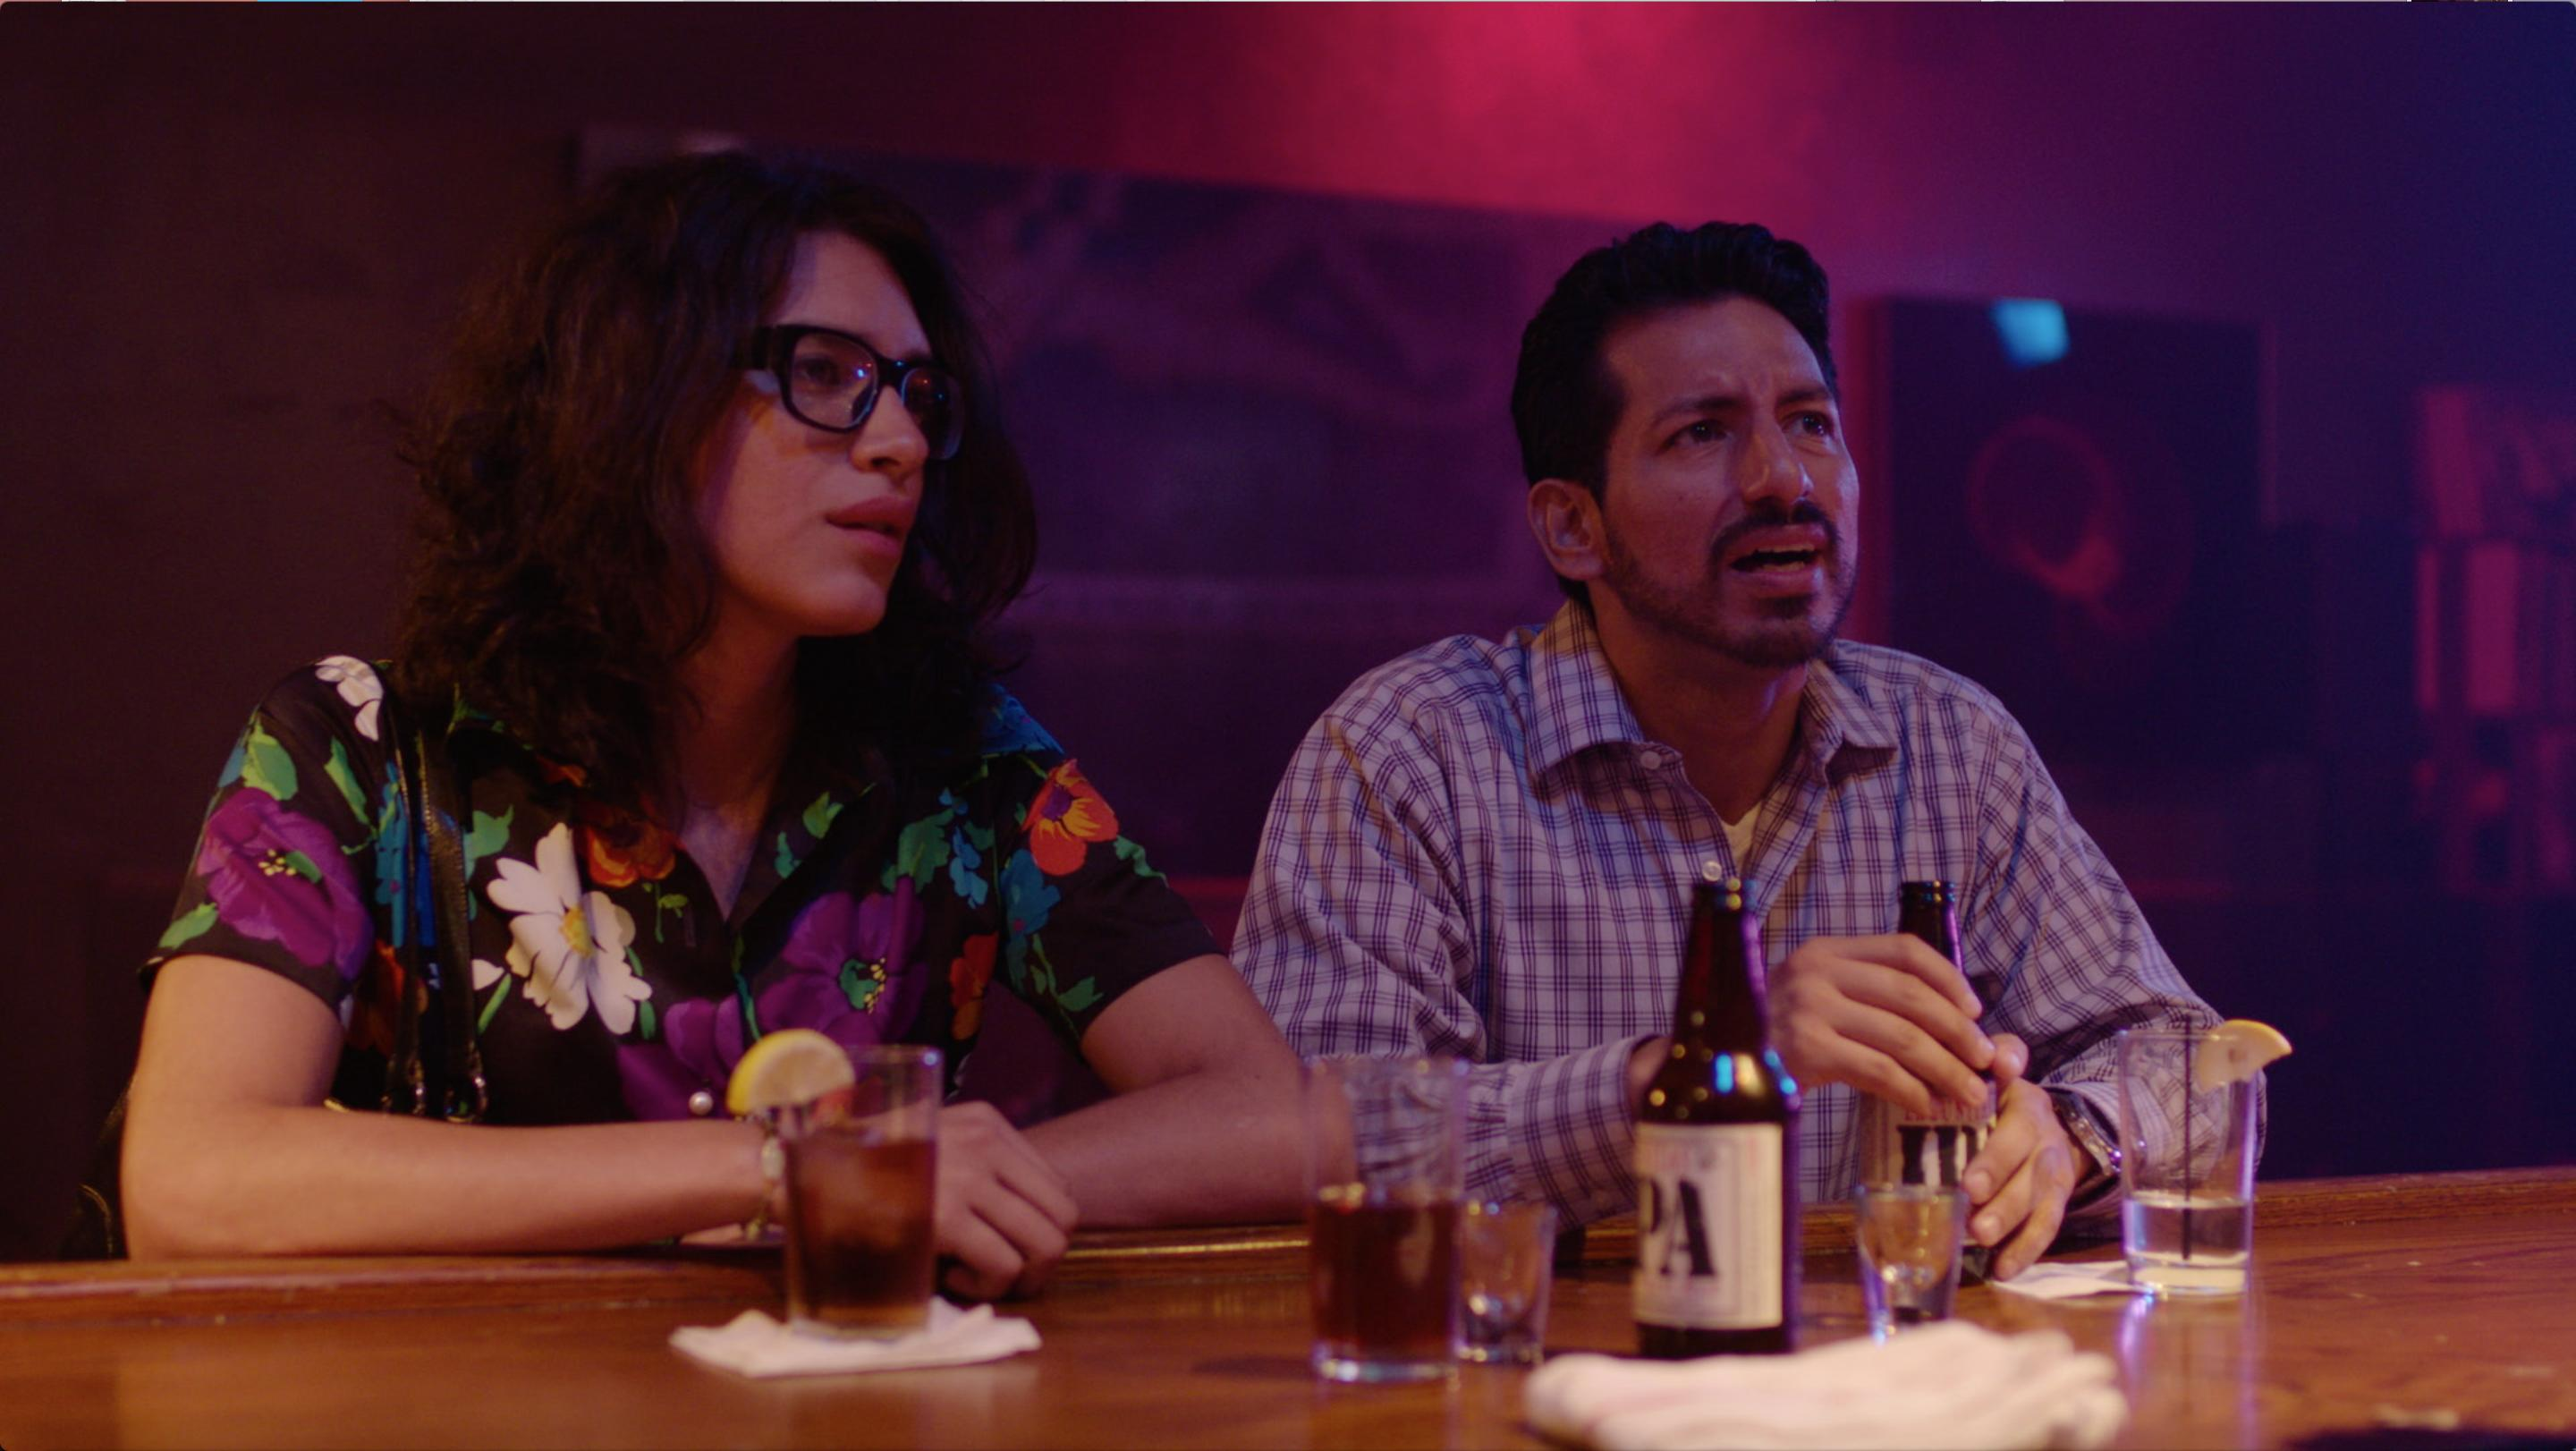 CineFestival, The Country's Longest-Running Latino Film Festival, Is Back for its 41st Year